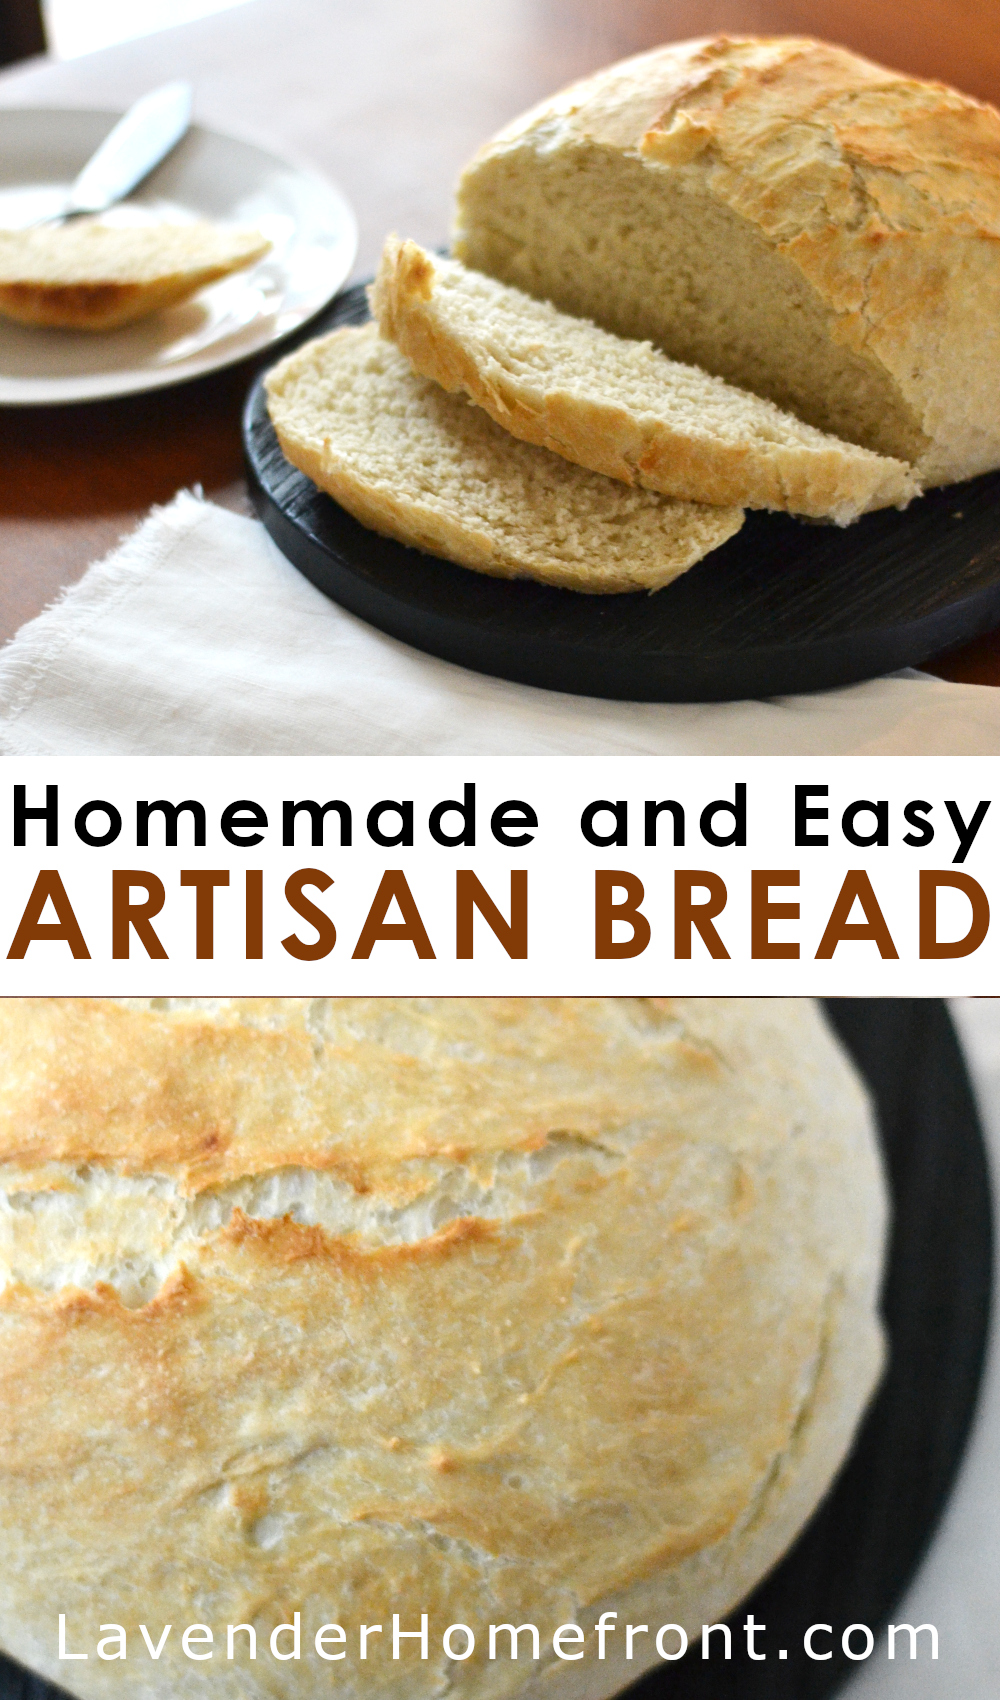 artisan bread recipe pinnable image with text overlay.